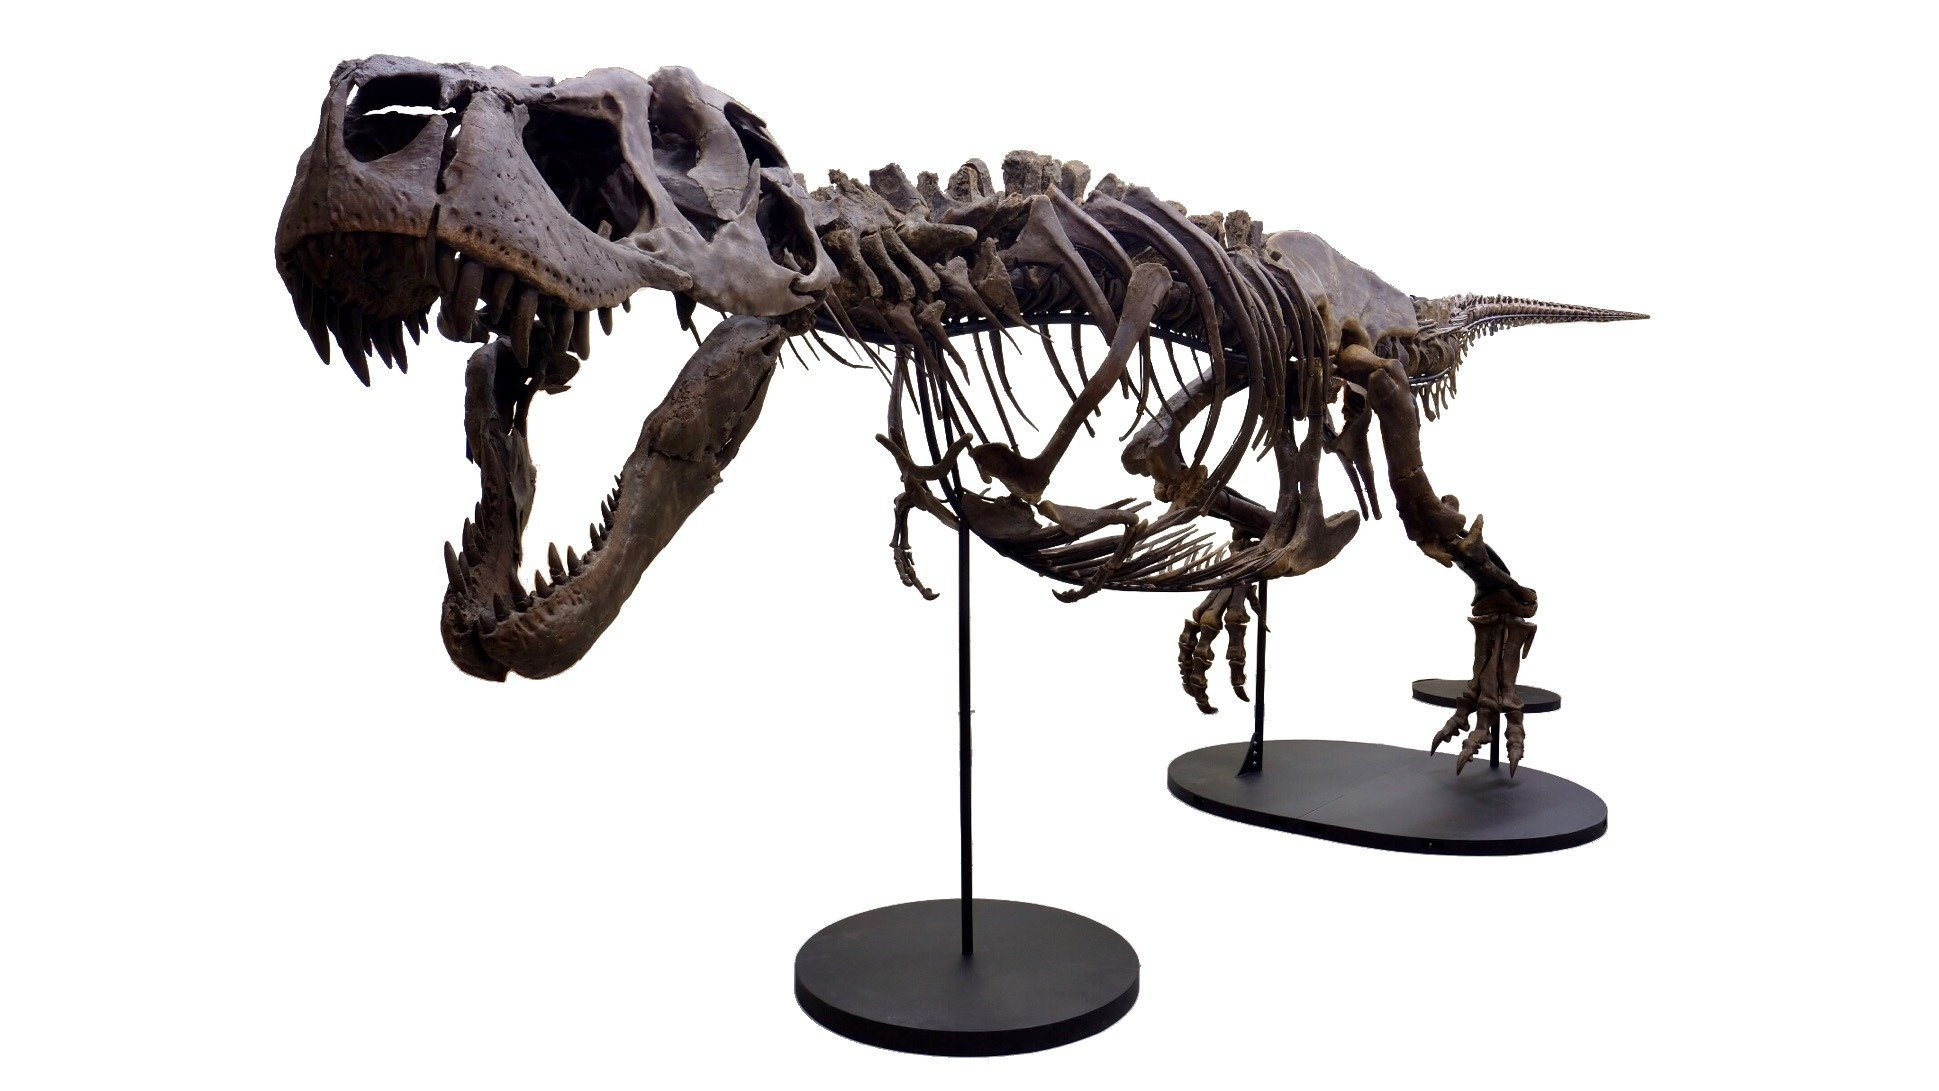 Meet Victoria, one of the most complete T. rex fossils in the world